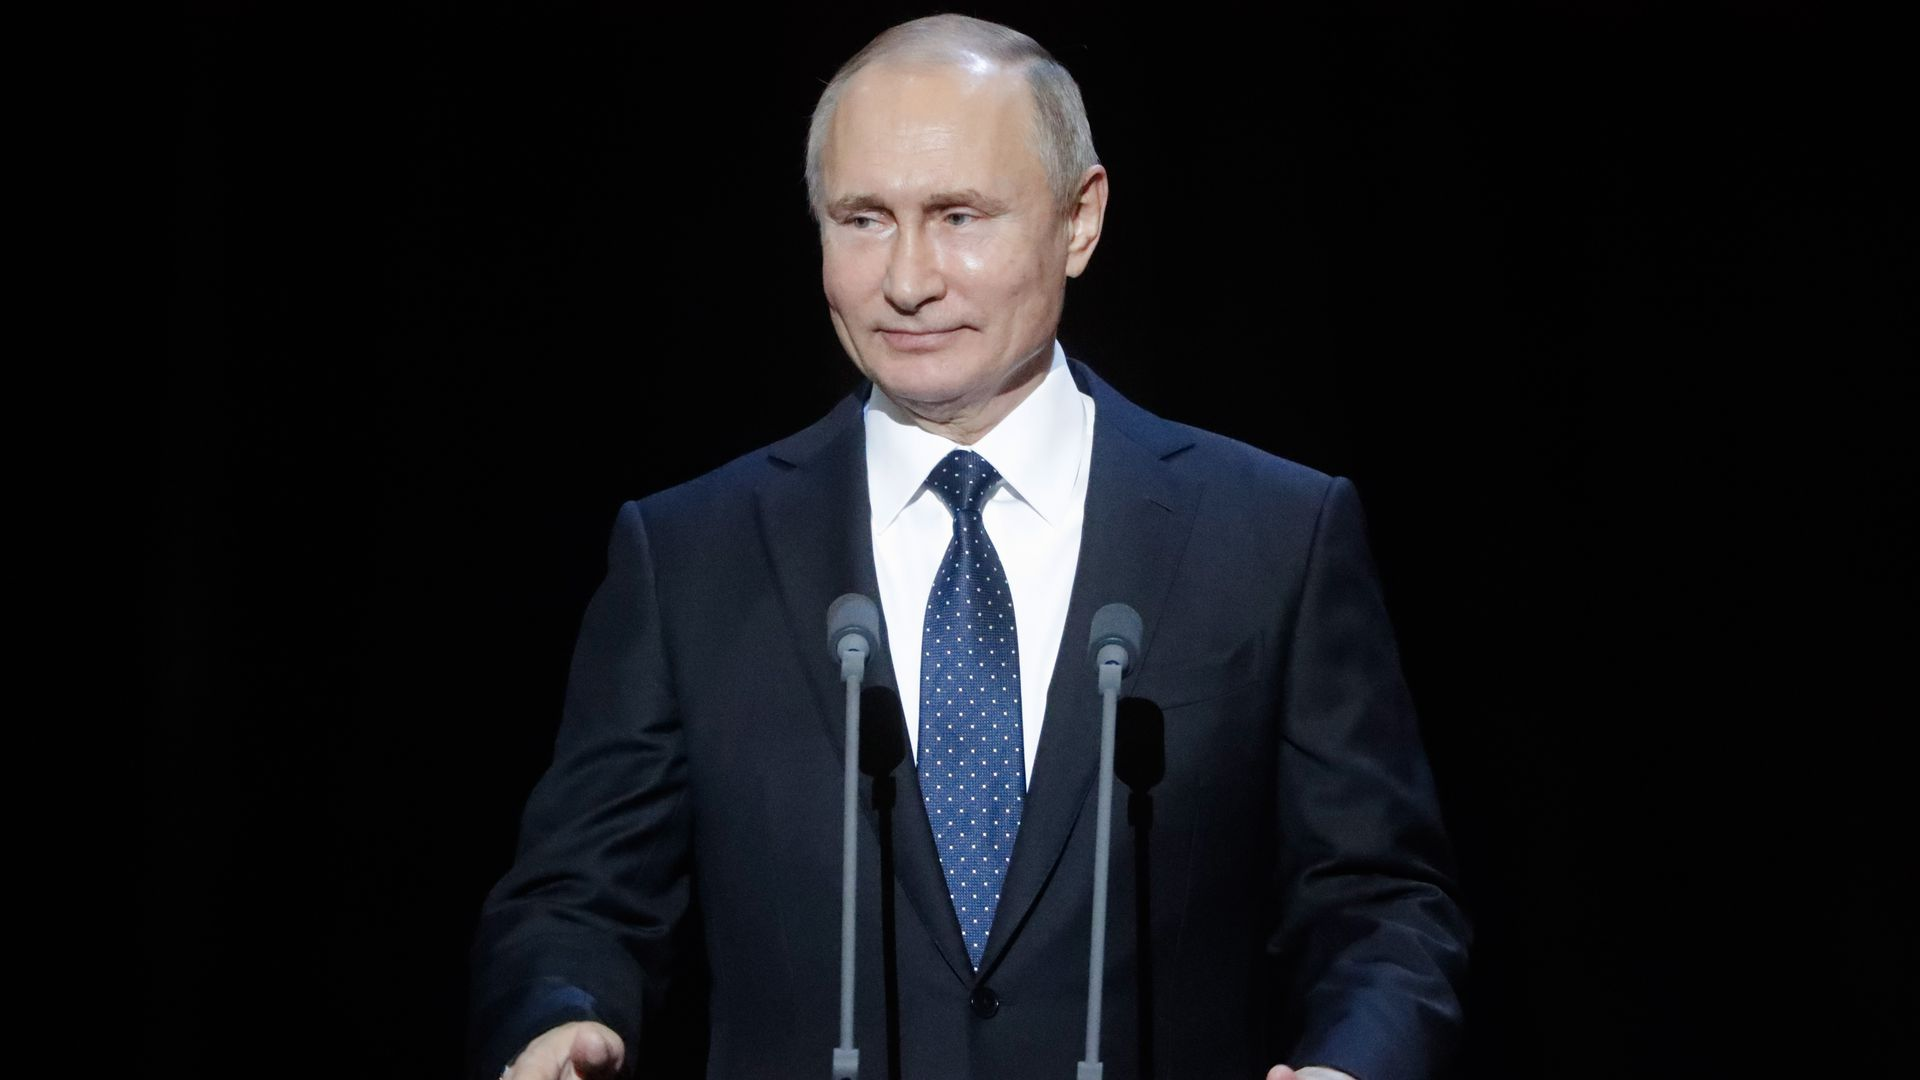 Vladimir Putin at podium smiling.